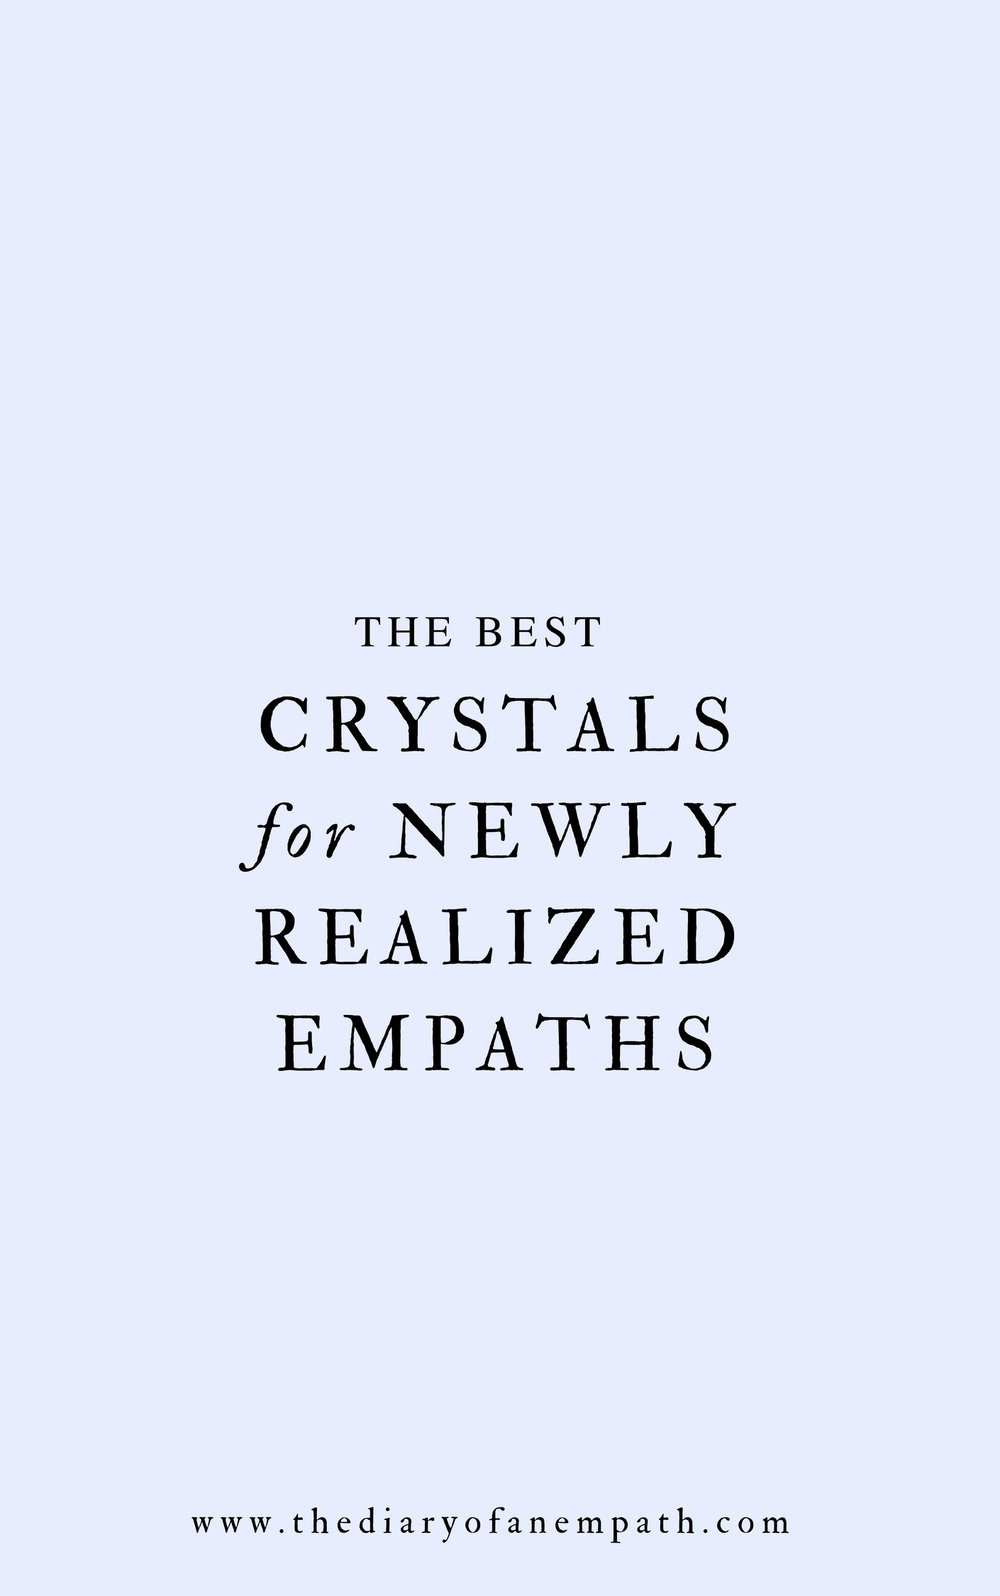 The Best Crystals For Newly Realized Empaths, thediaryofanempath.com